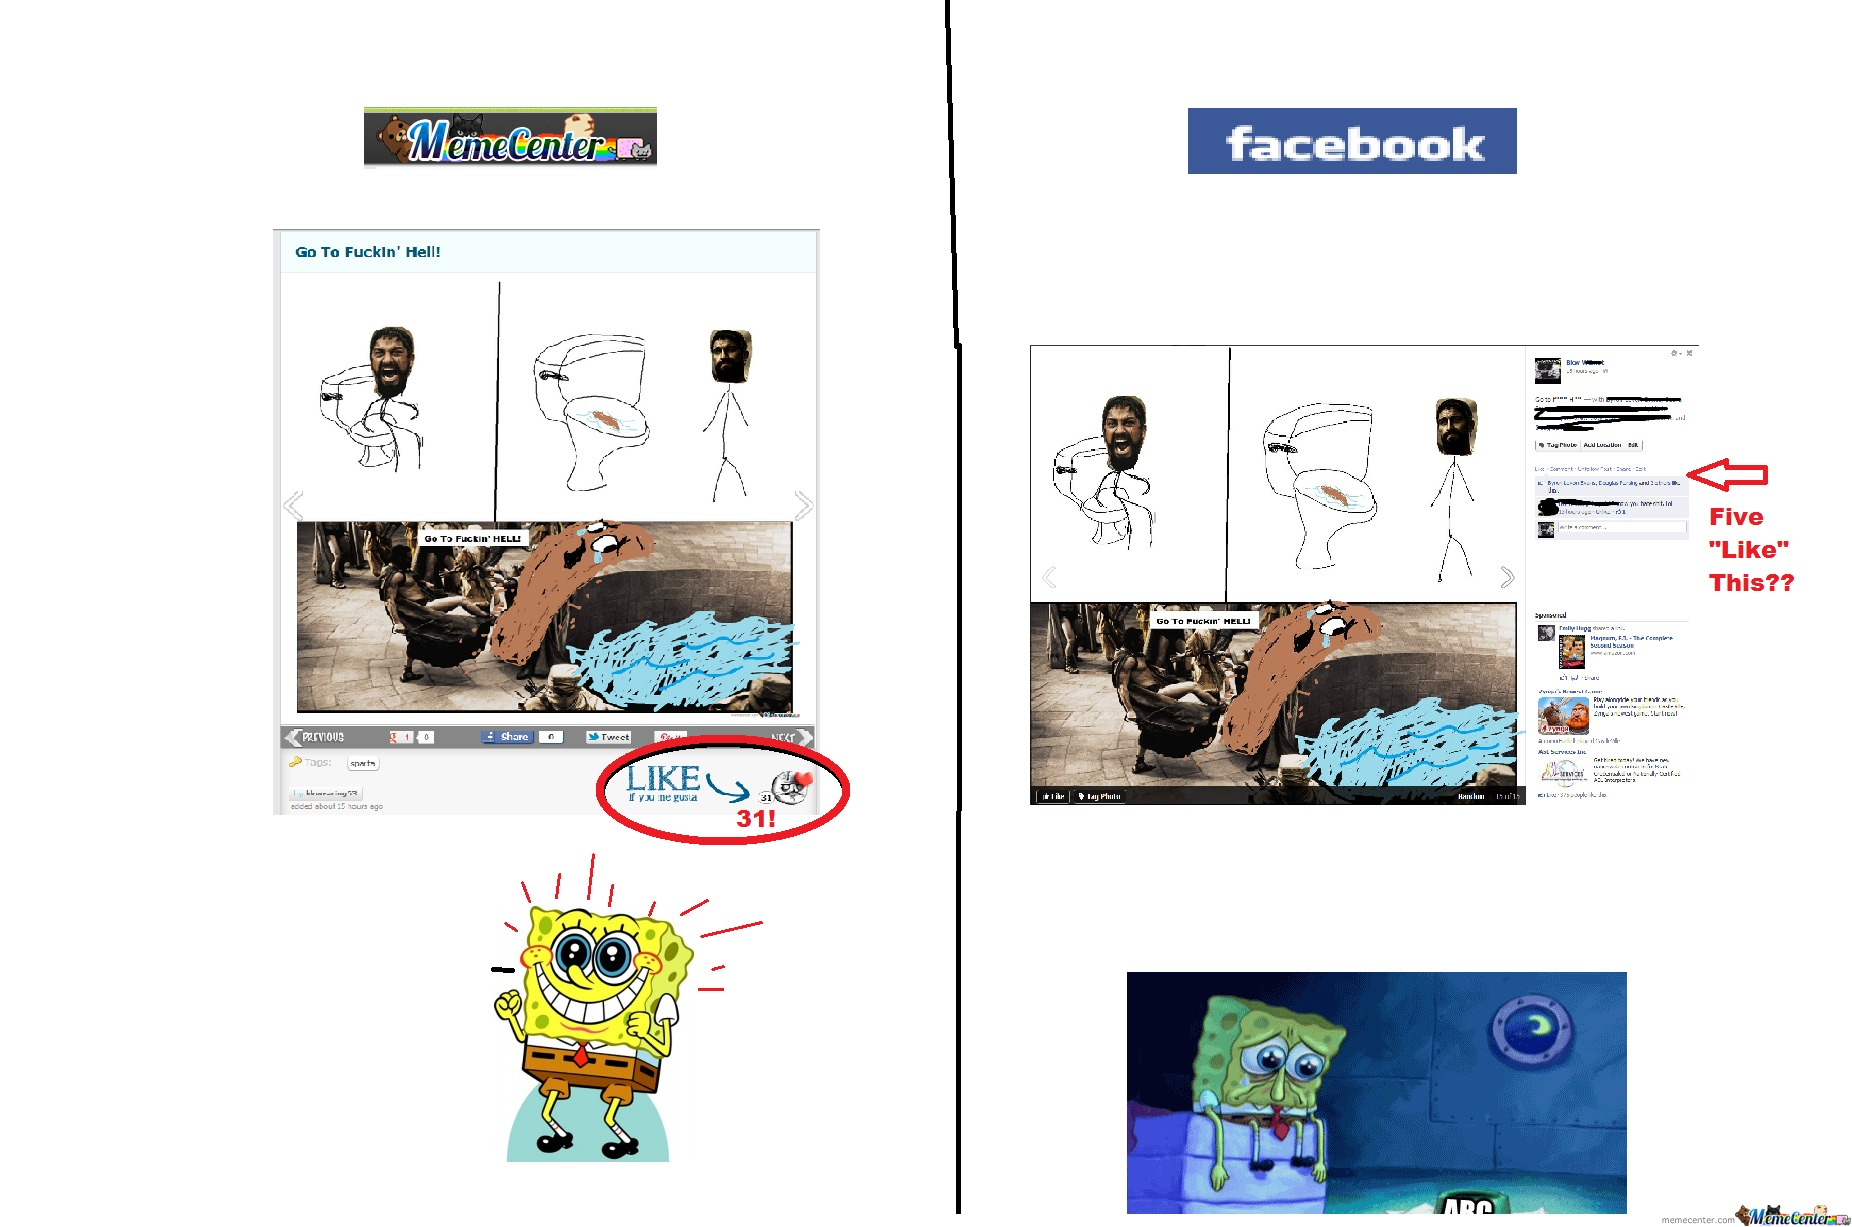 Memcenter Vs Facebook